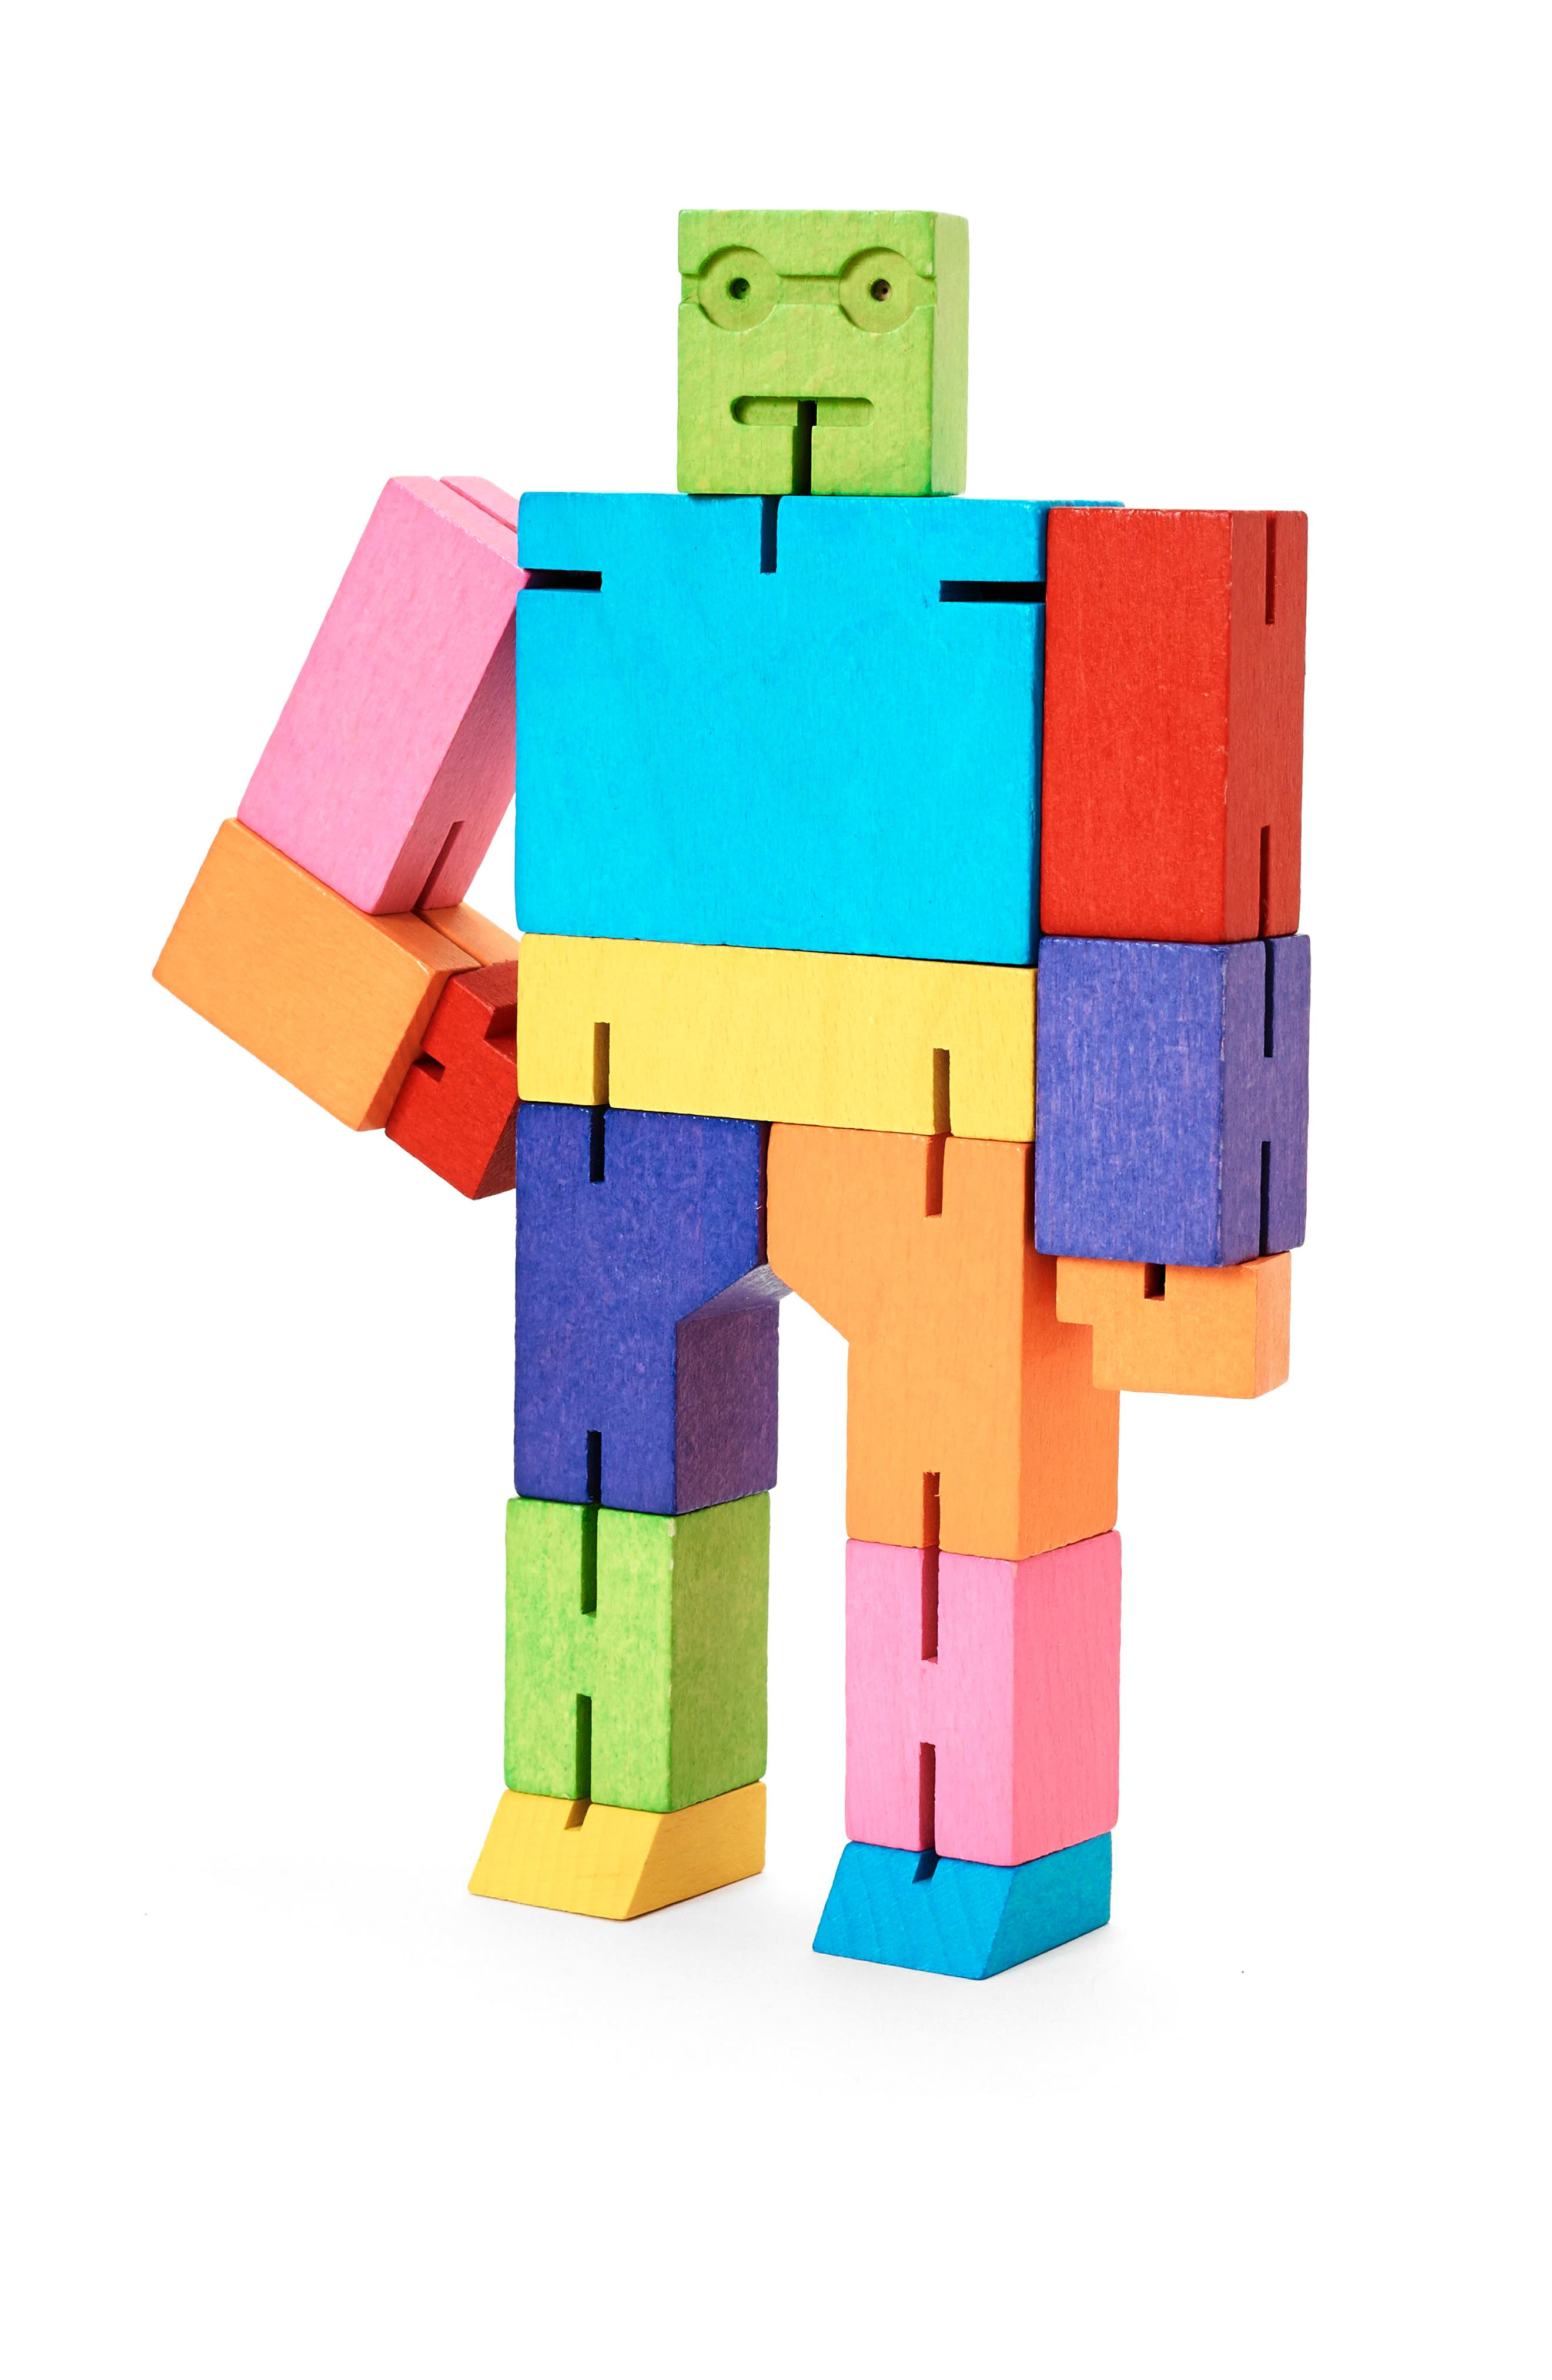 Main Image - Areaware Cubebot Small Wooden Robot Toy